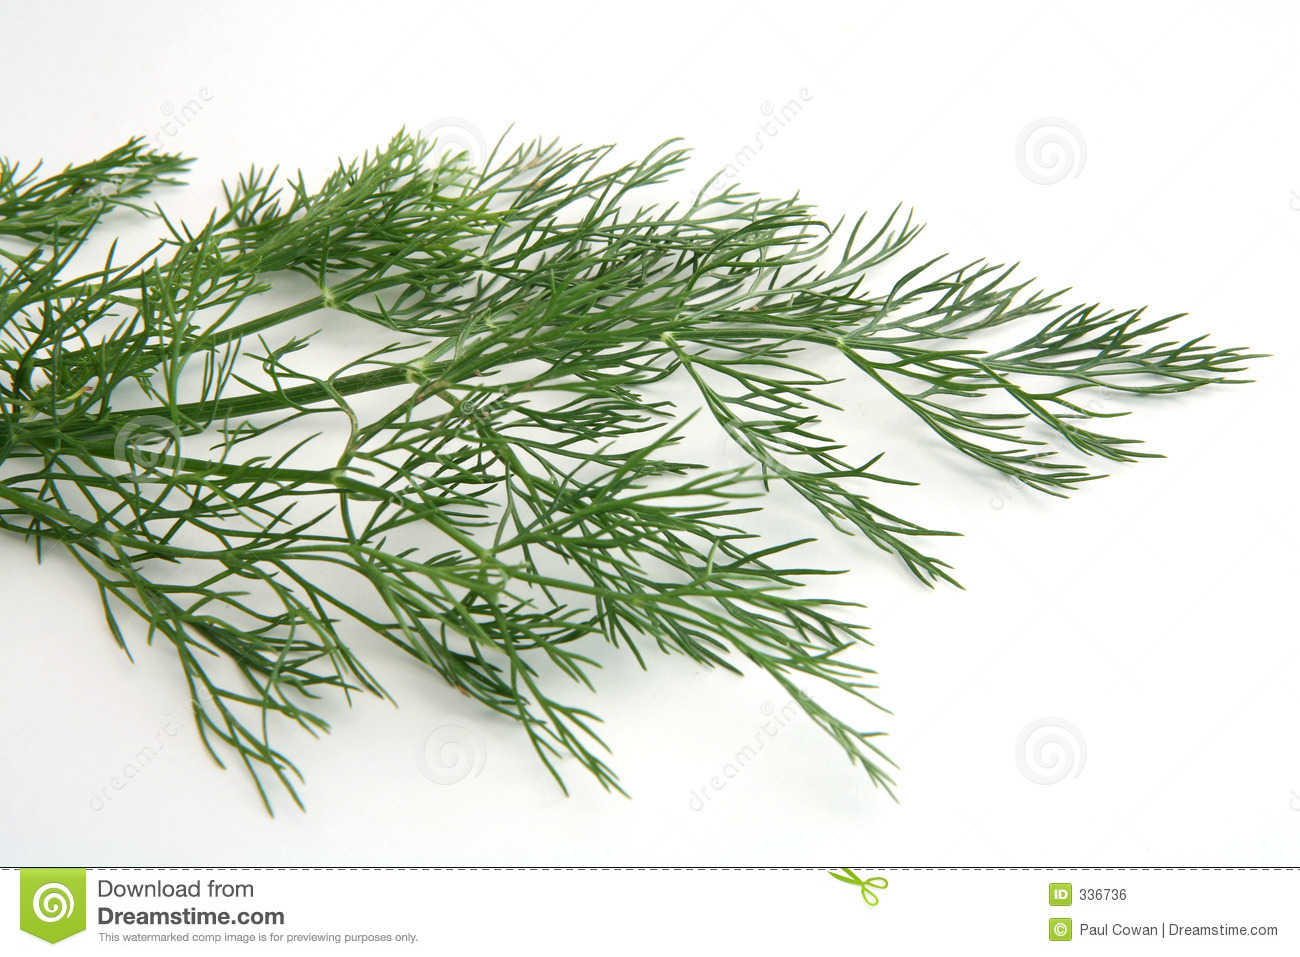 how to cut dill weed